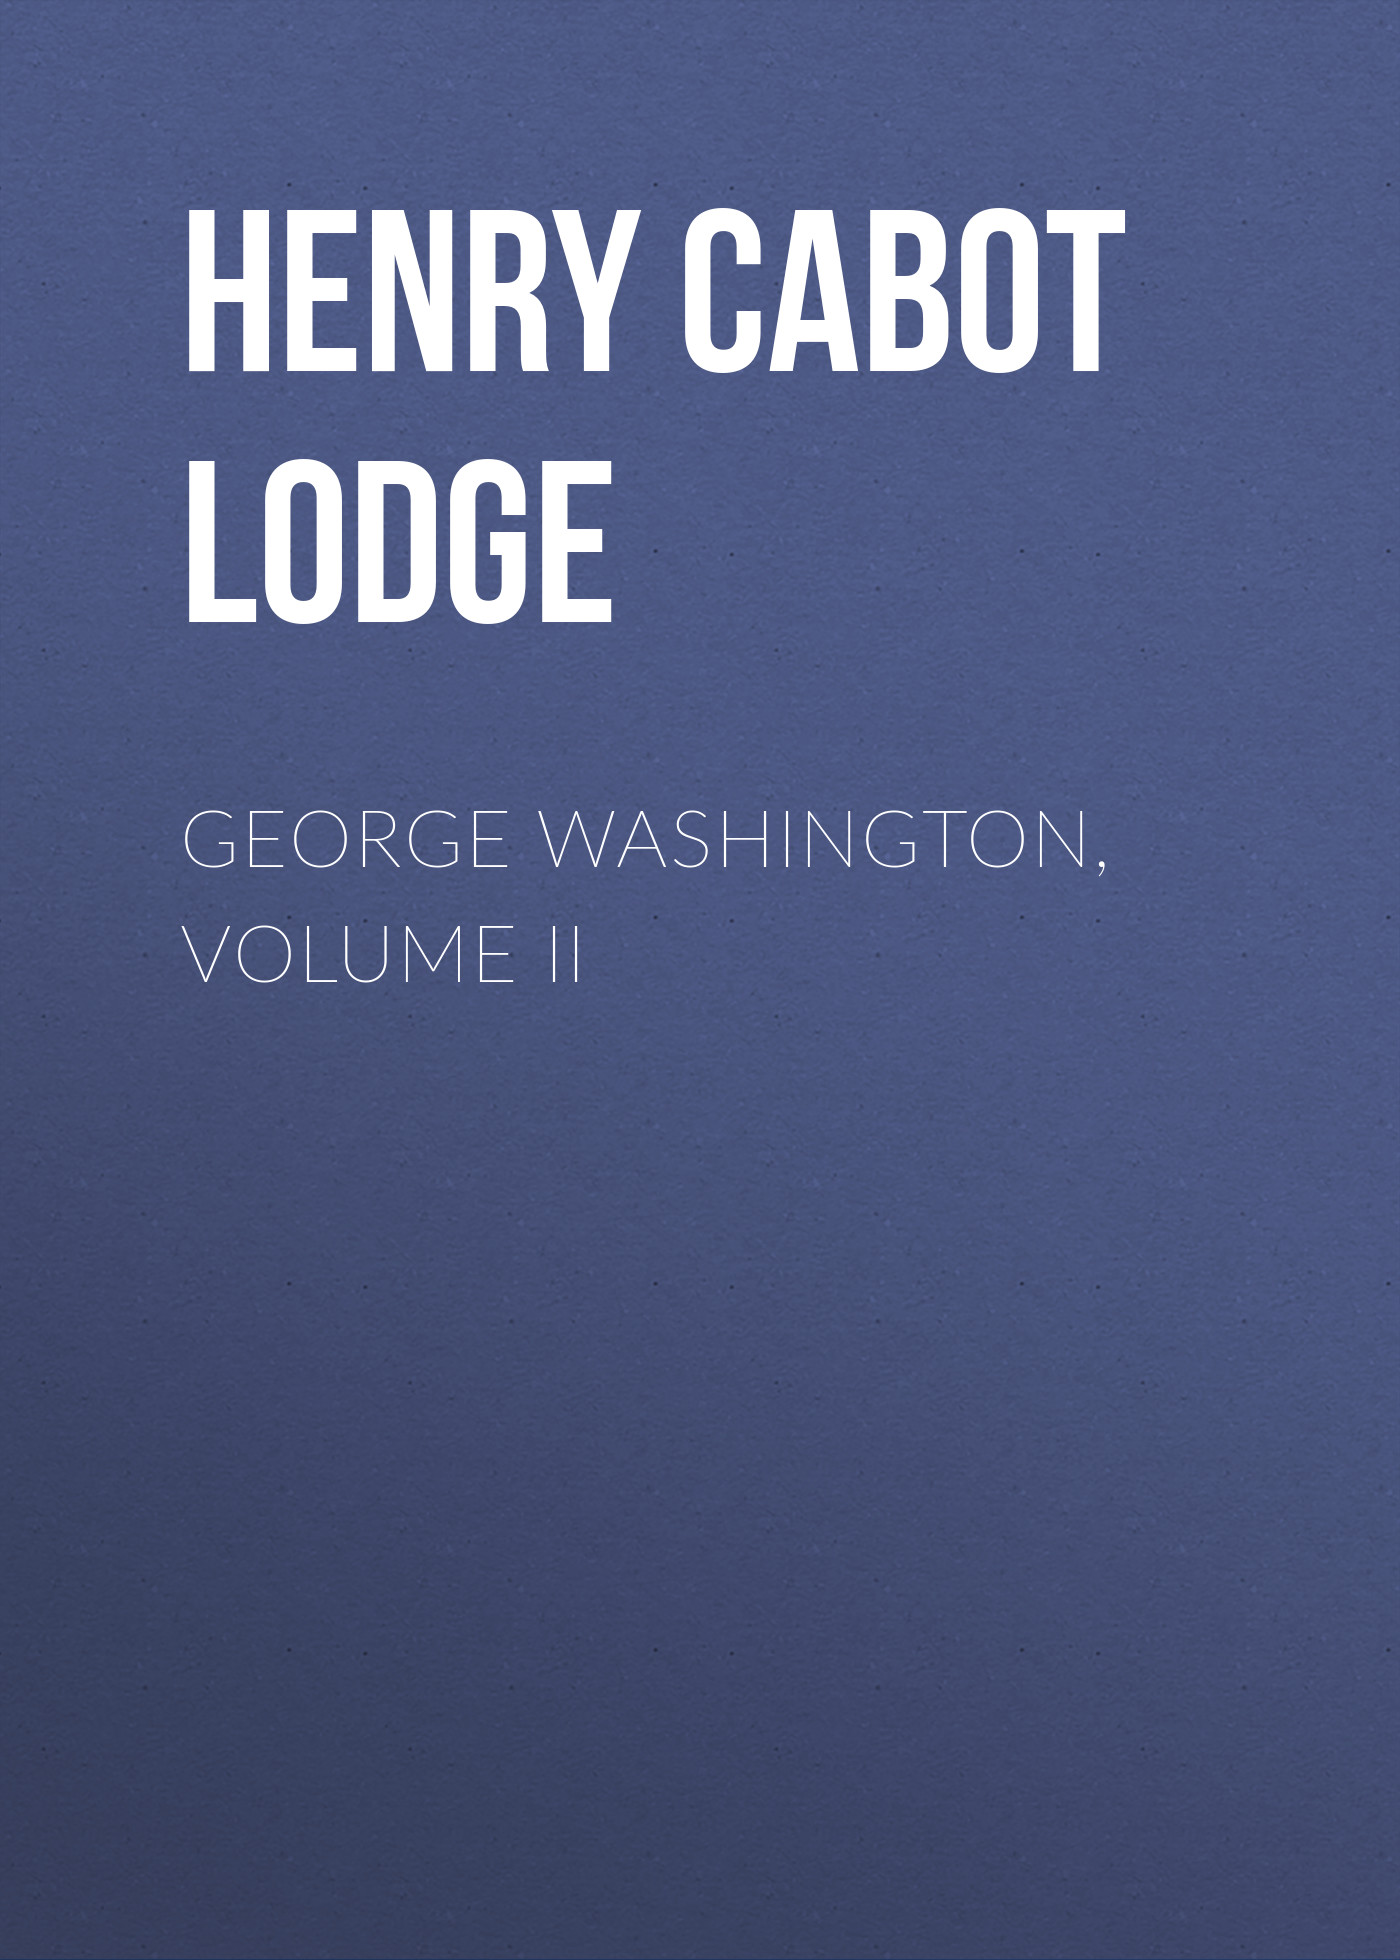 Henry Cabot Lodge George Washington, Volume II edward lengel g a companion to george washington